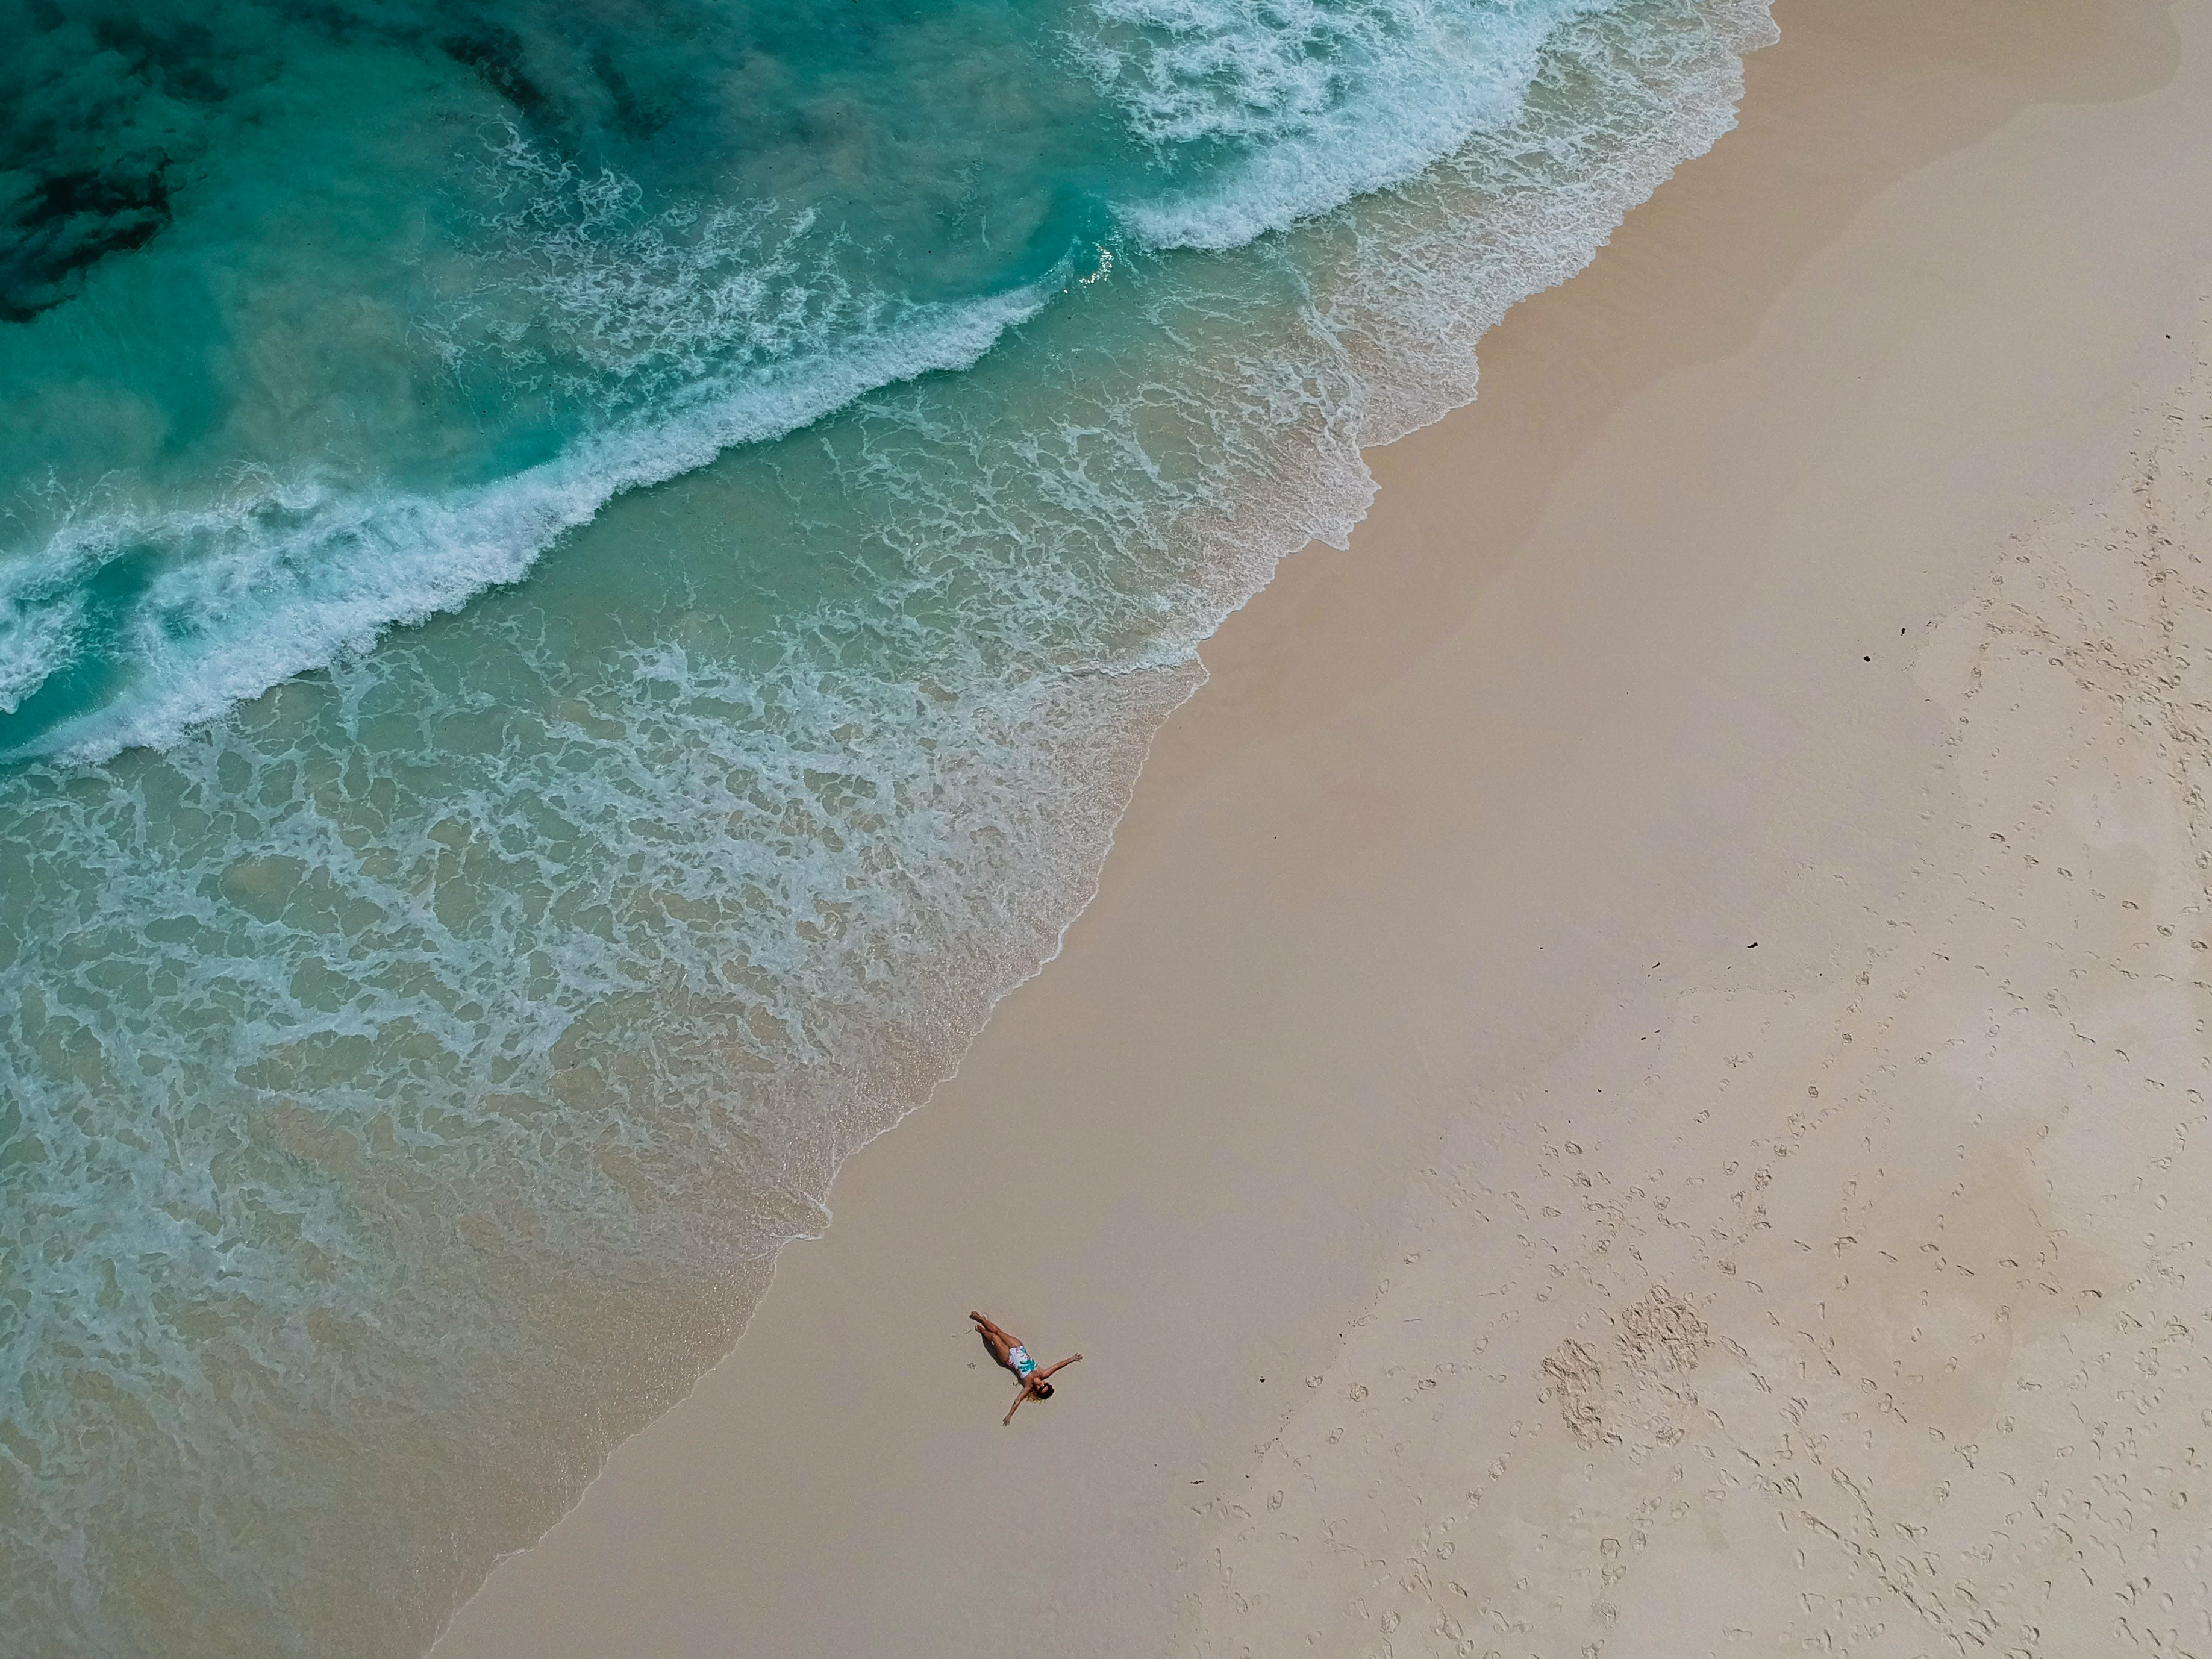 birds eye photography of person near body of water